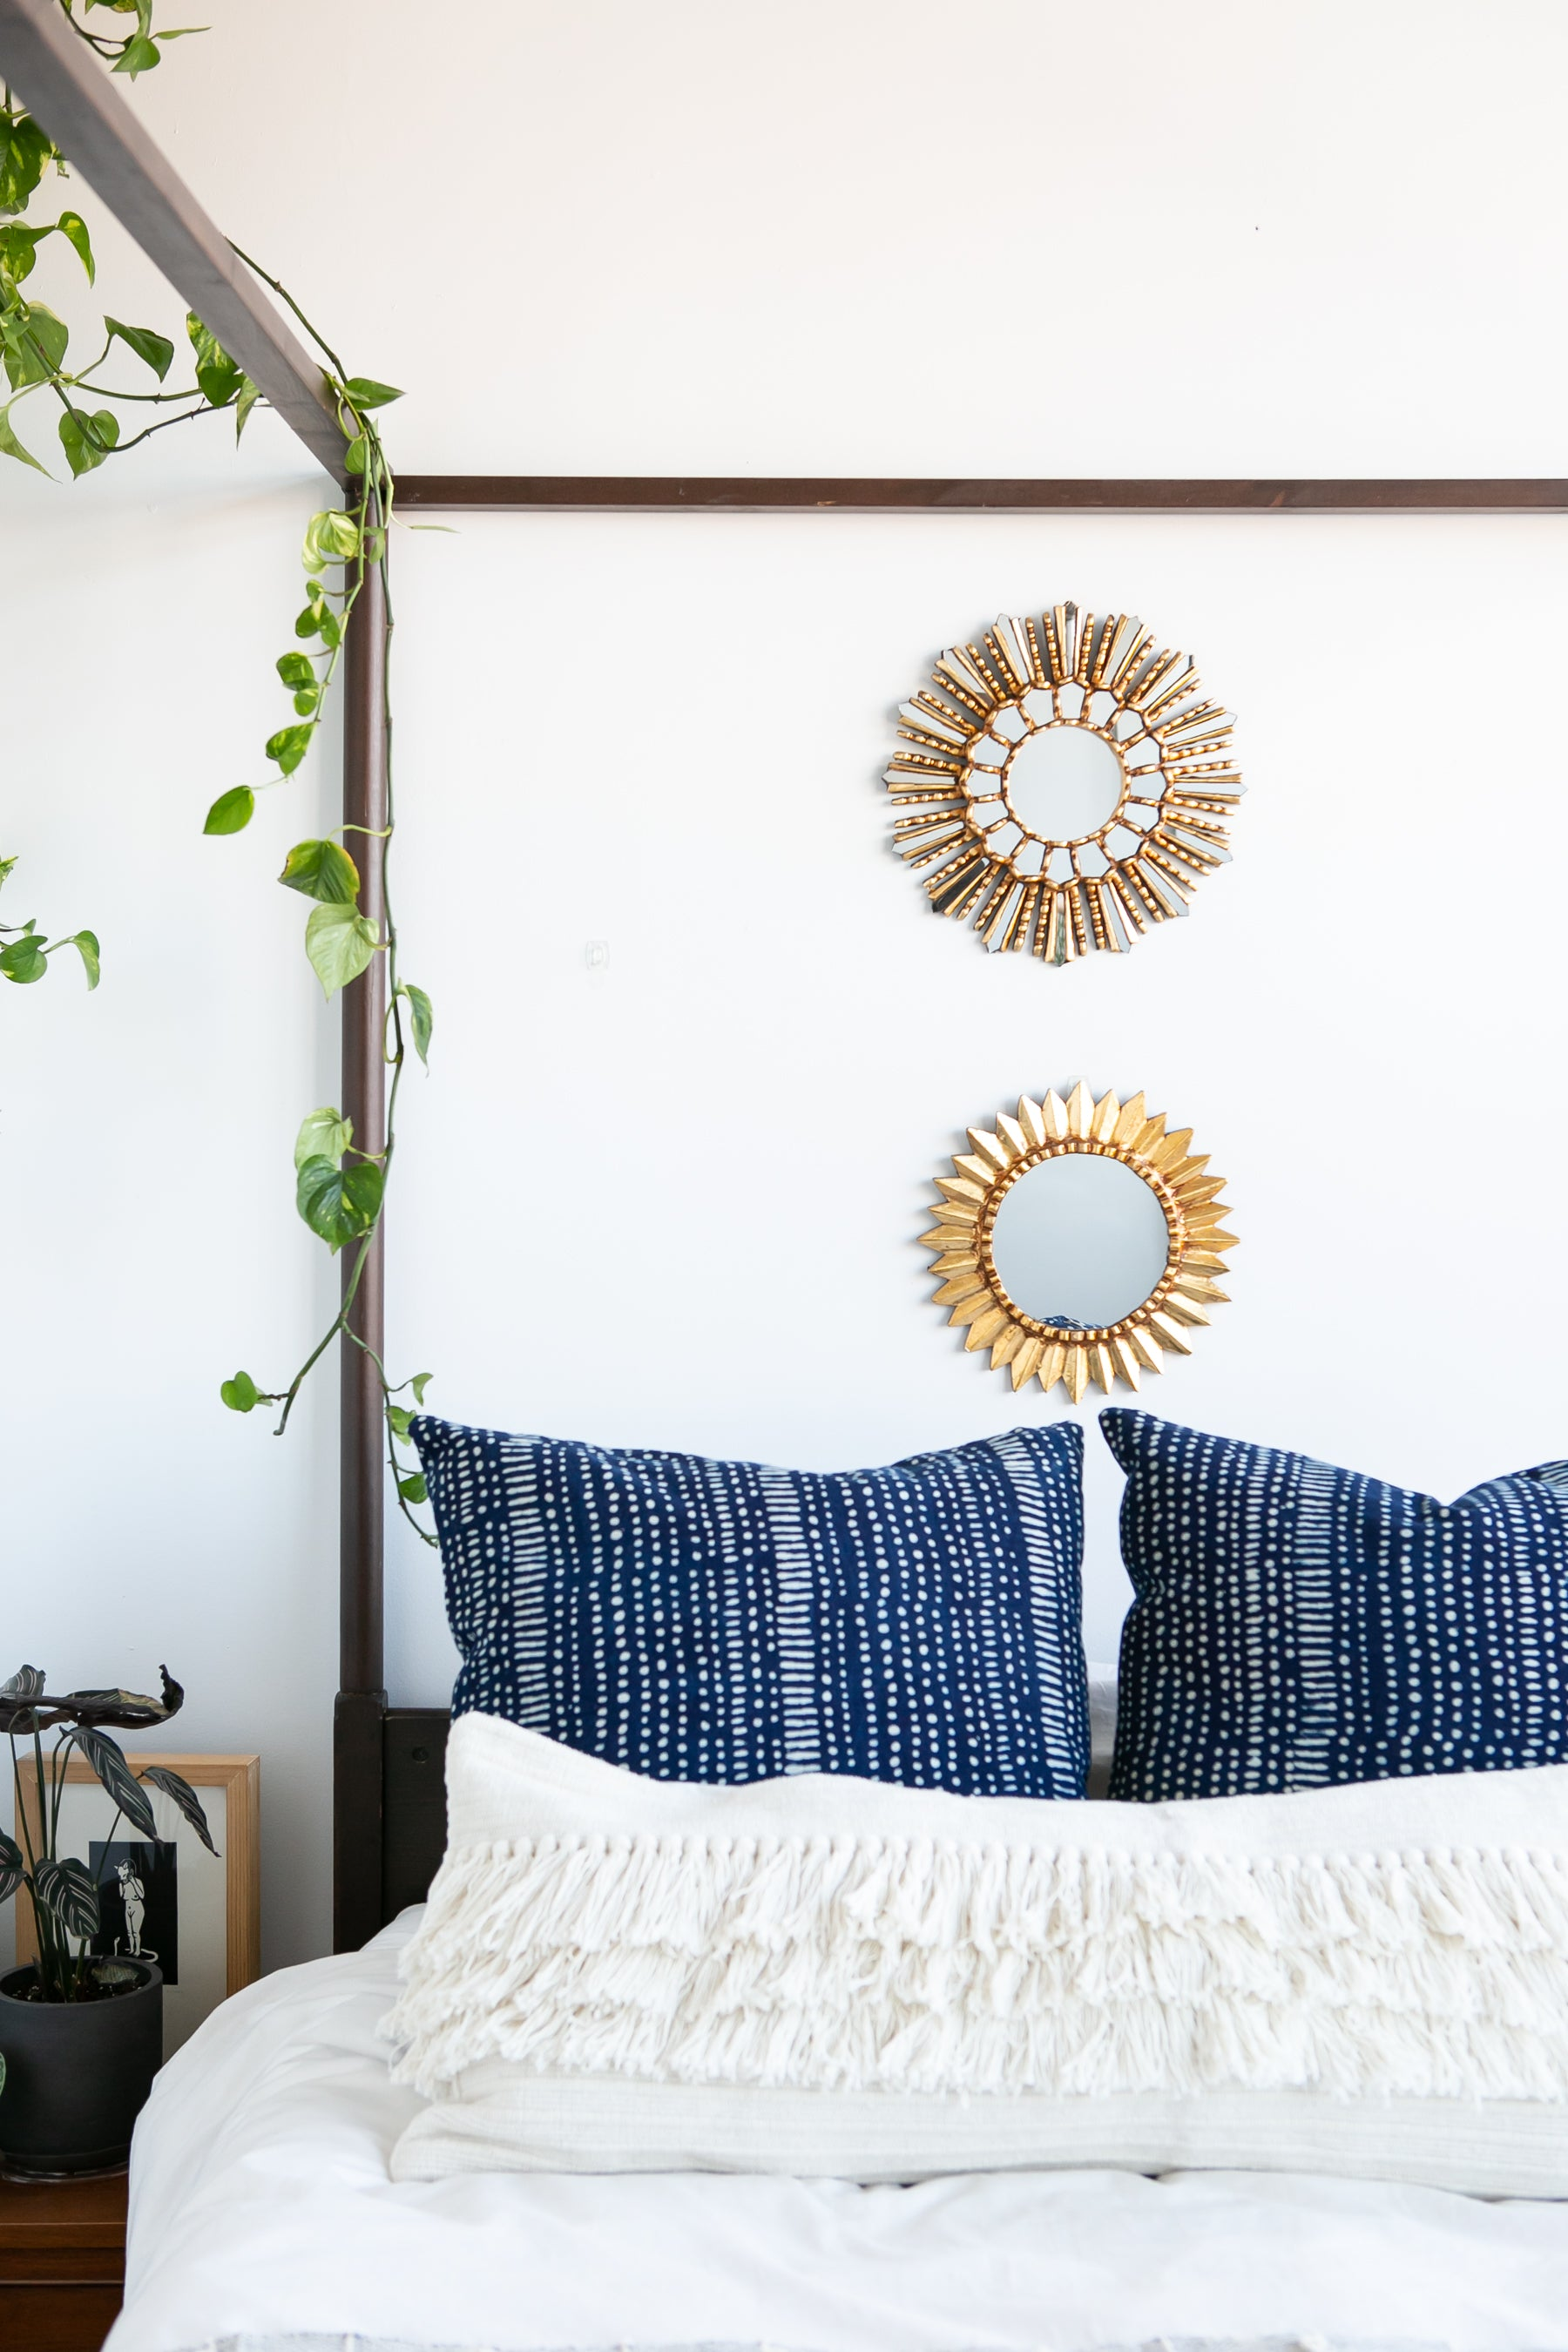 Artisan Made Gift Guide for The Home Decor Lover